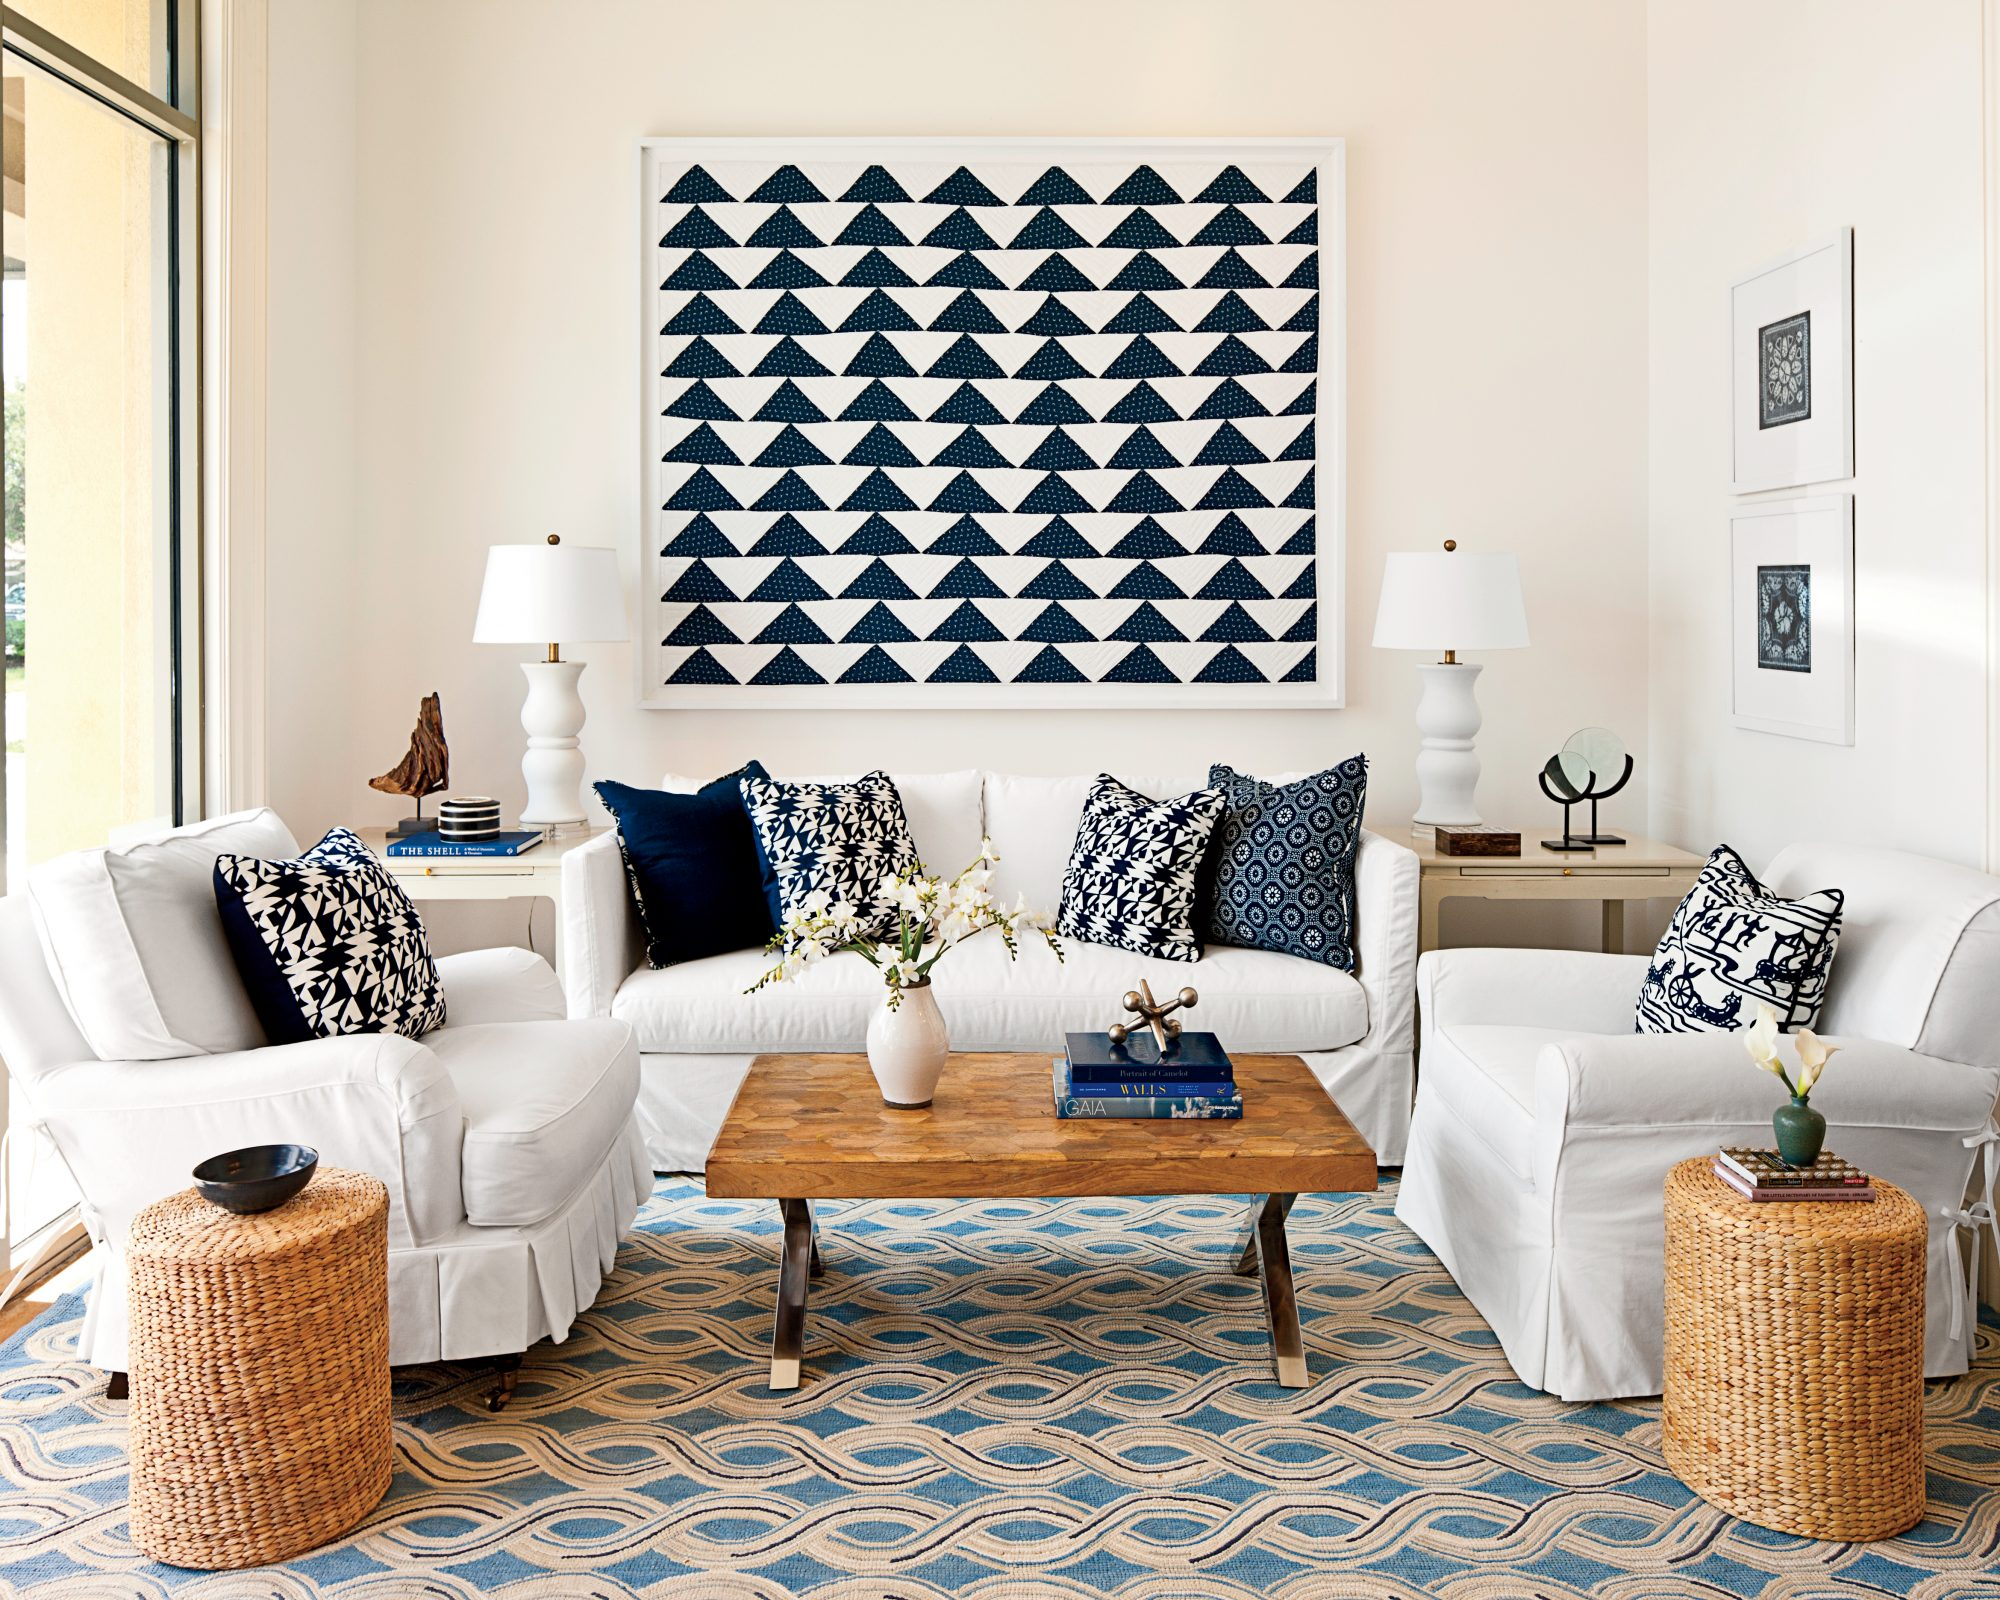 How to decorate above the sofa southern living - Over the couch decor ...